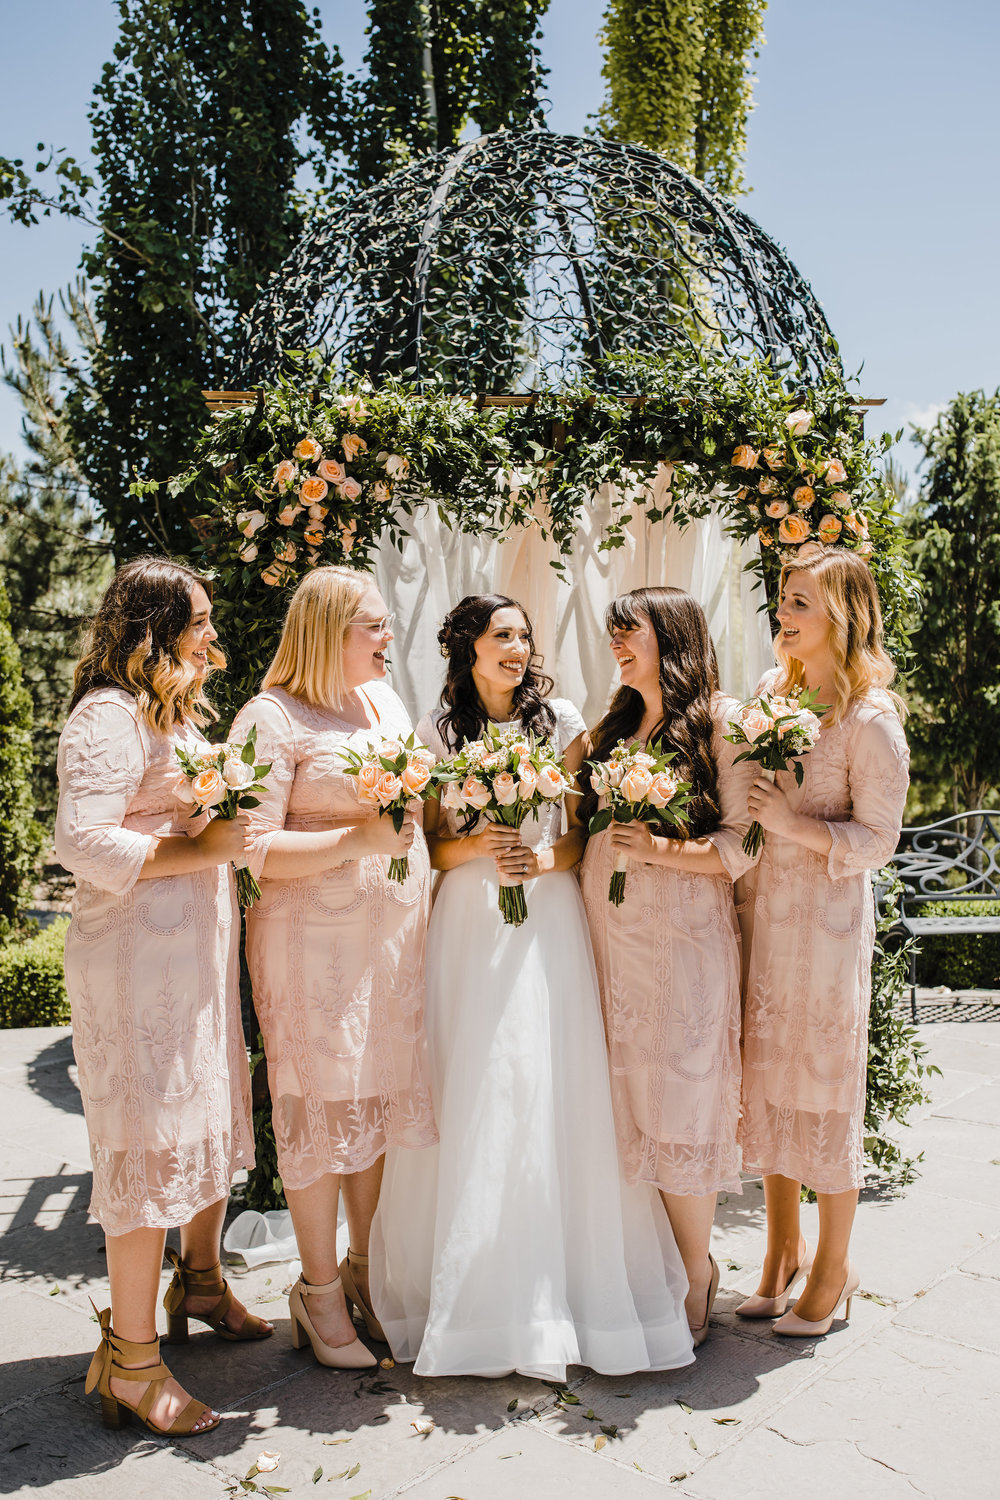 bridesmaids smiling with bride on wedding day blush lace bridesmaid dresses rose bouquets